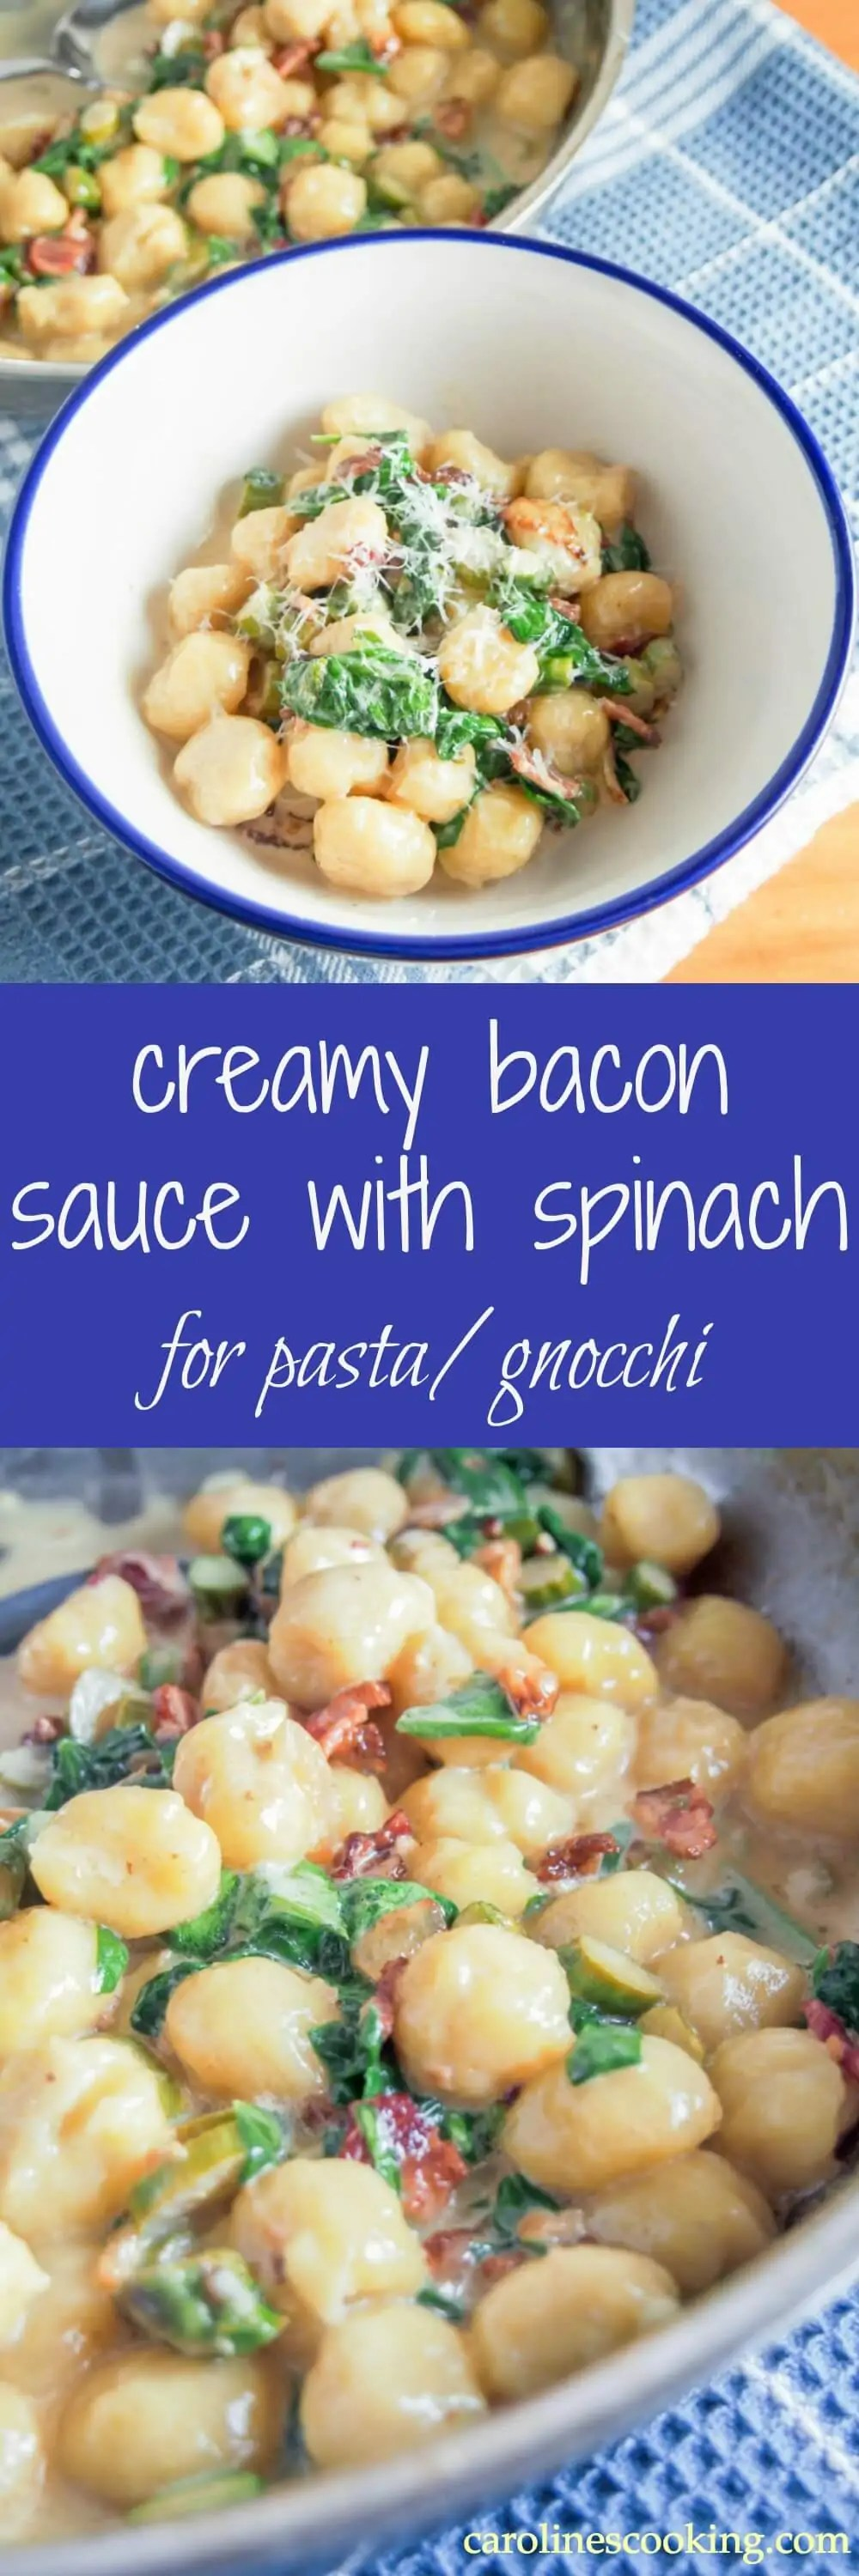 Easy to make and packed with flavor, this creamy bacon sauce with spinach is perfect with gnocchi or pasta. Delicious comfort food.